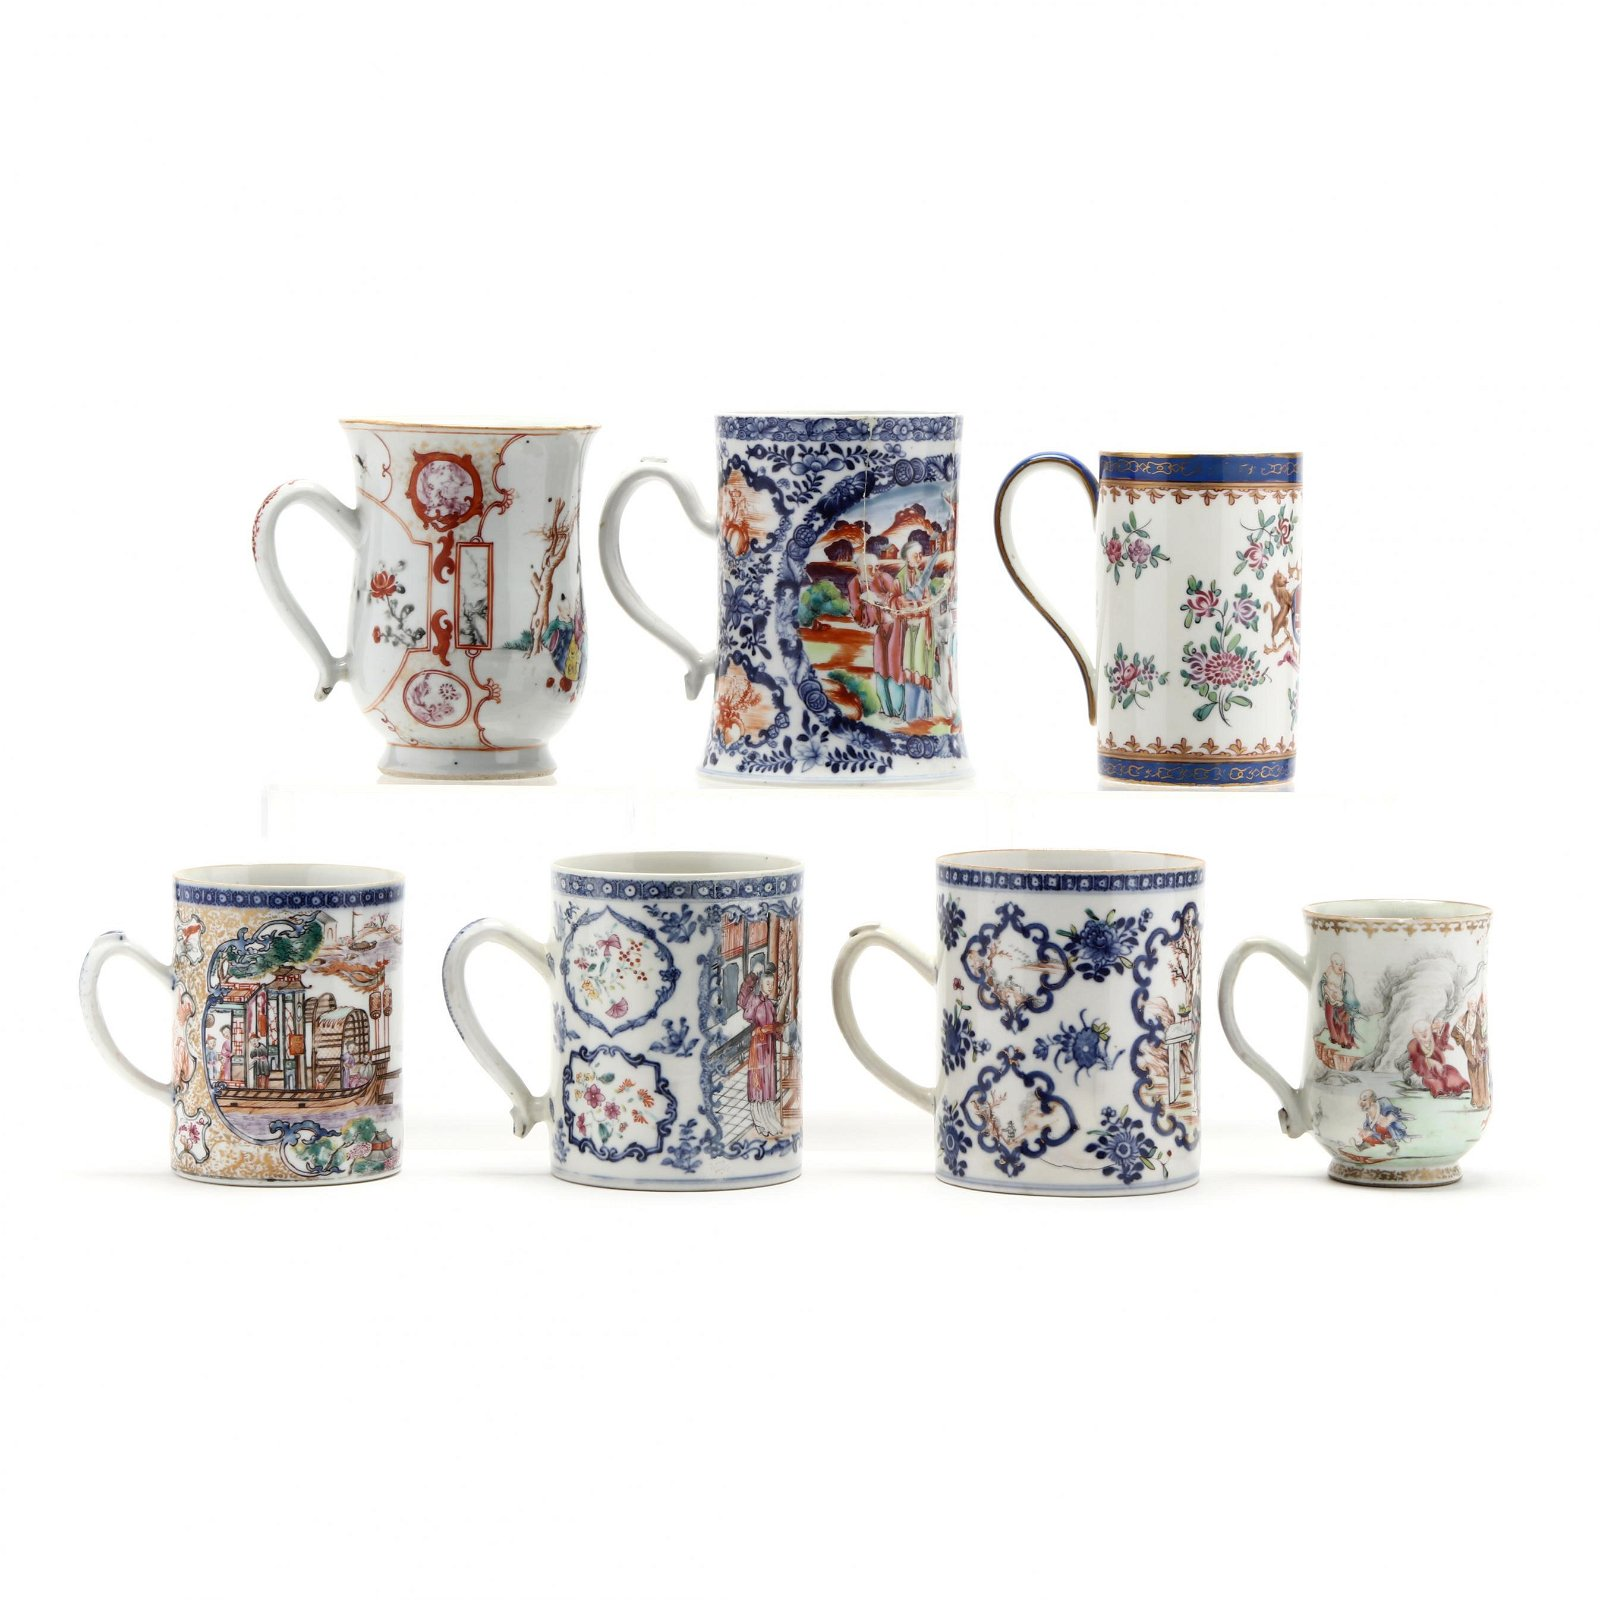 Seven Chinese Export Porcelain Mugs